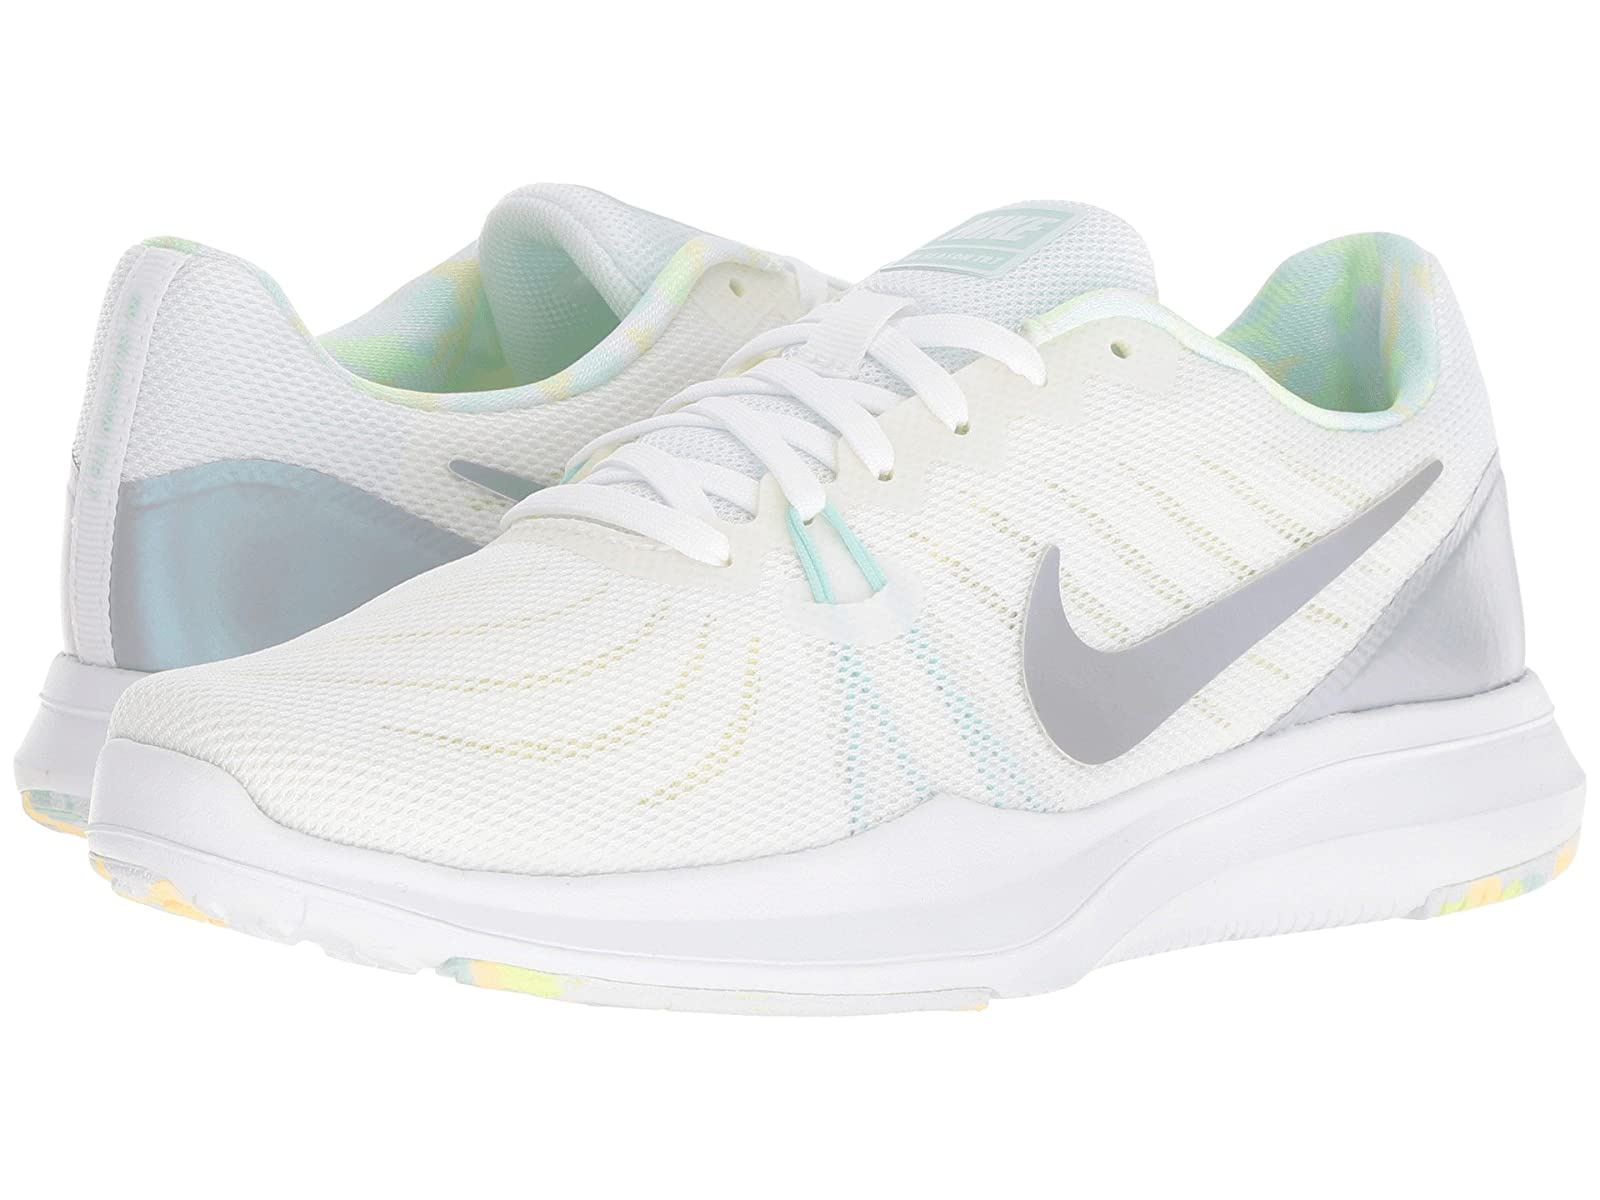 Nike In-Season 7 Premium Beautiful /Men/Women/ Beautiful Premium Design 578ac4